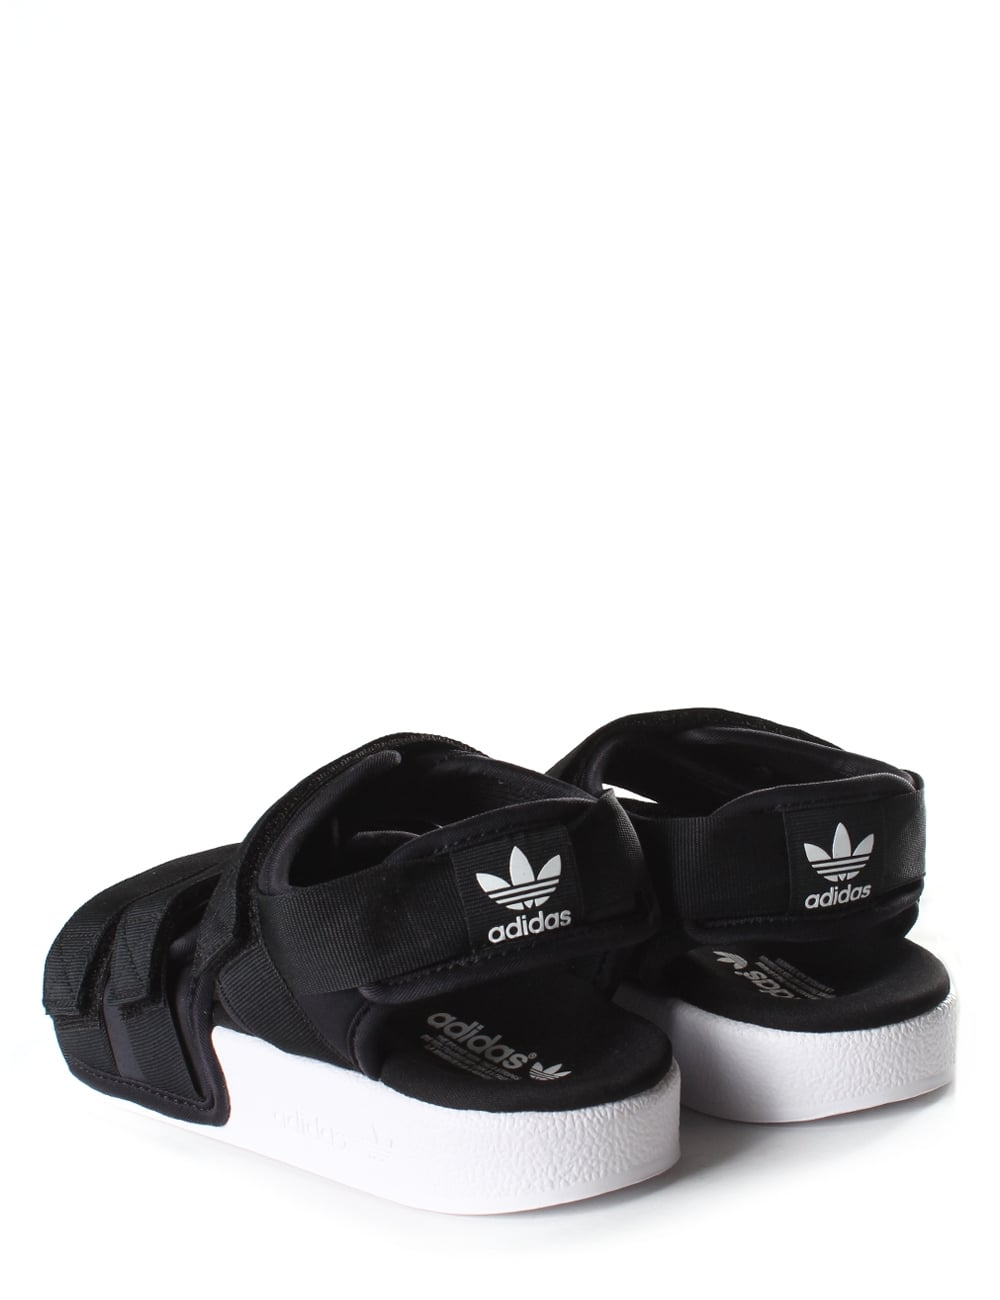 Buy adidas sandals womens black   OFF66% Discounted 4a5ee59cd2